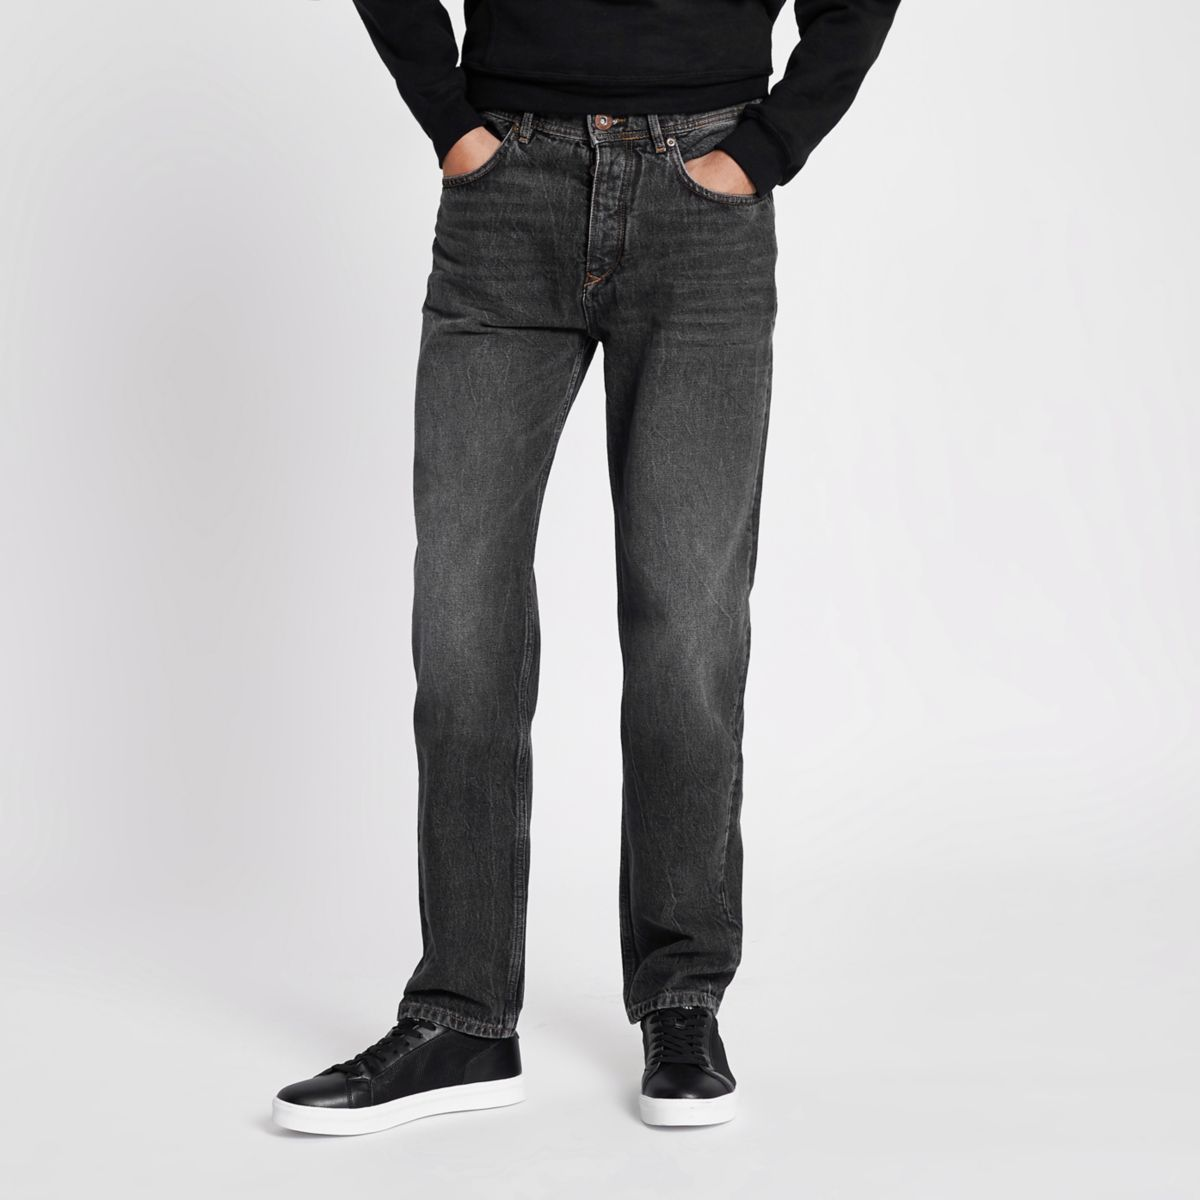 Black washed Bobby standard jeans